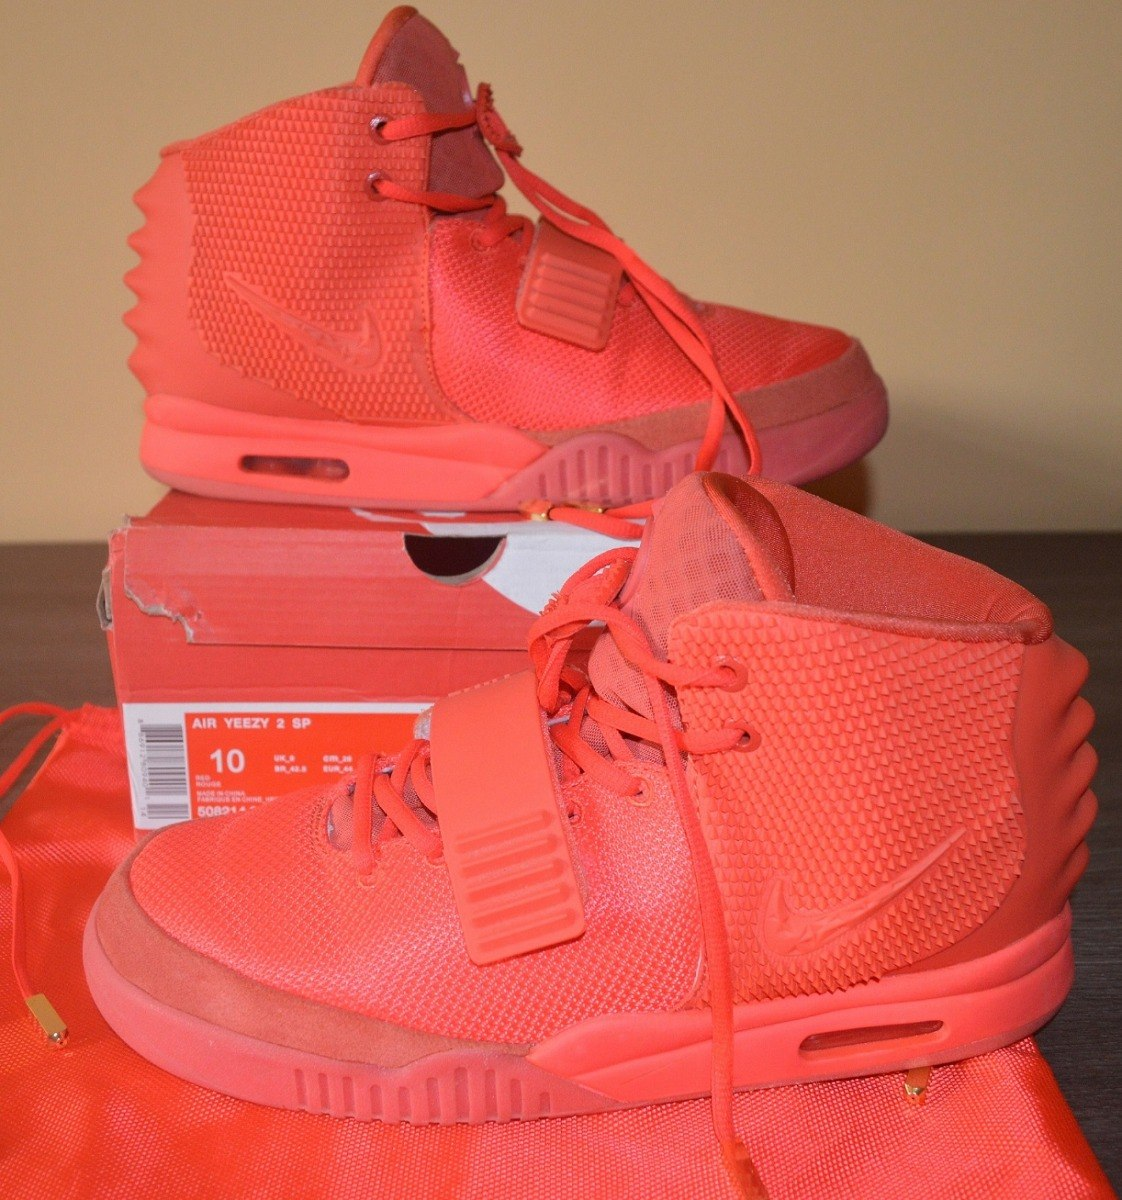 tênis nike air yeezy 2 red october kanye west. Carregando zoom. 8f9ad05ecb8c